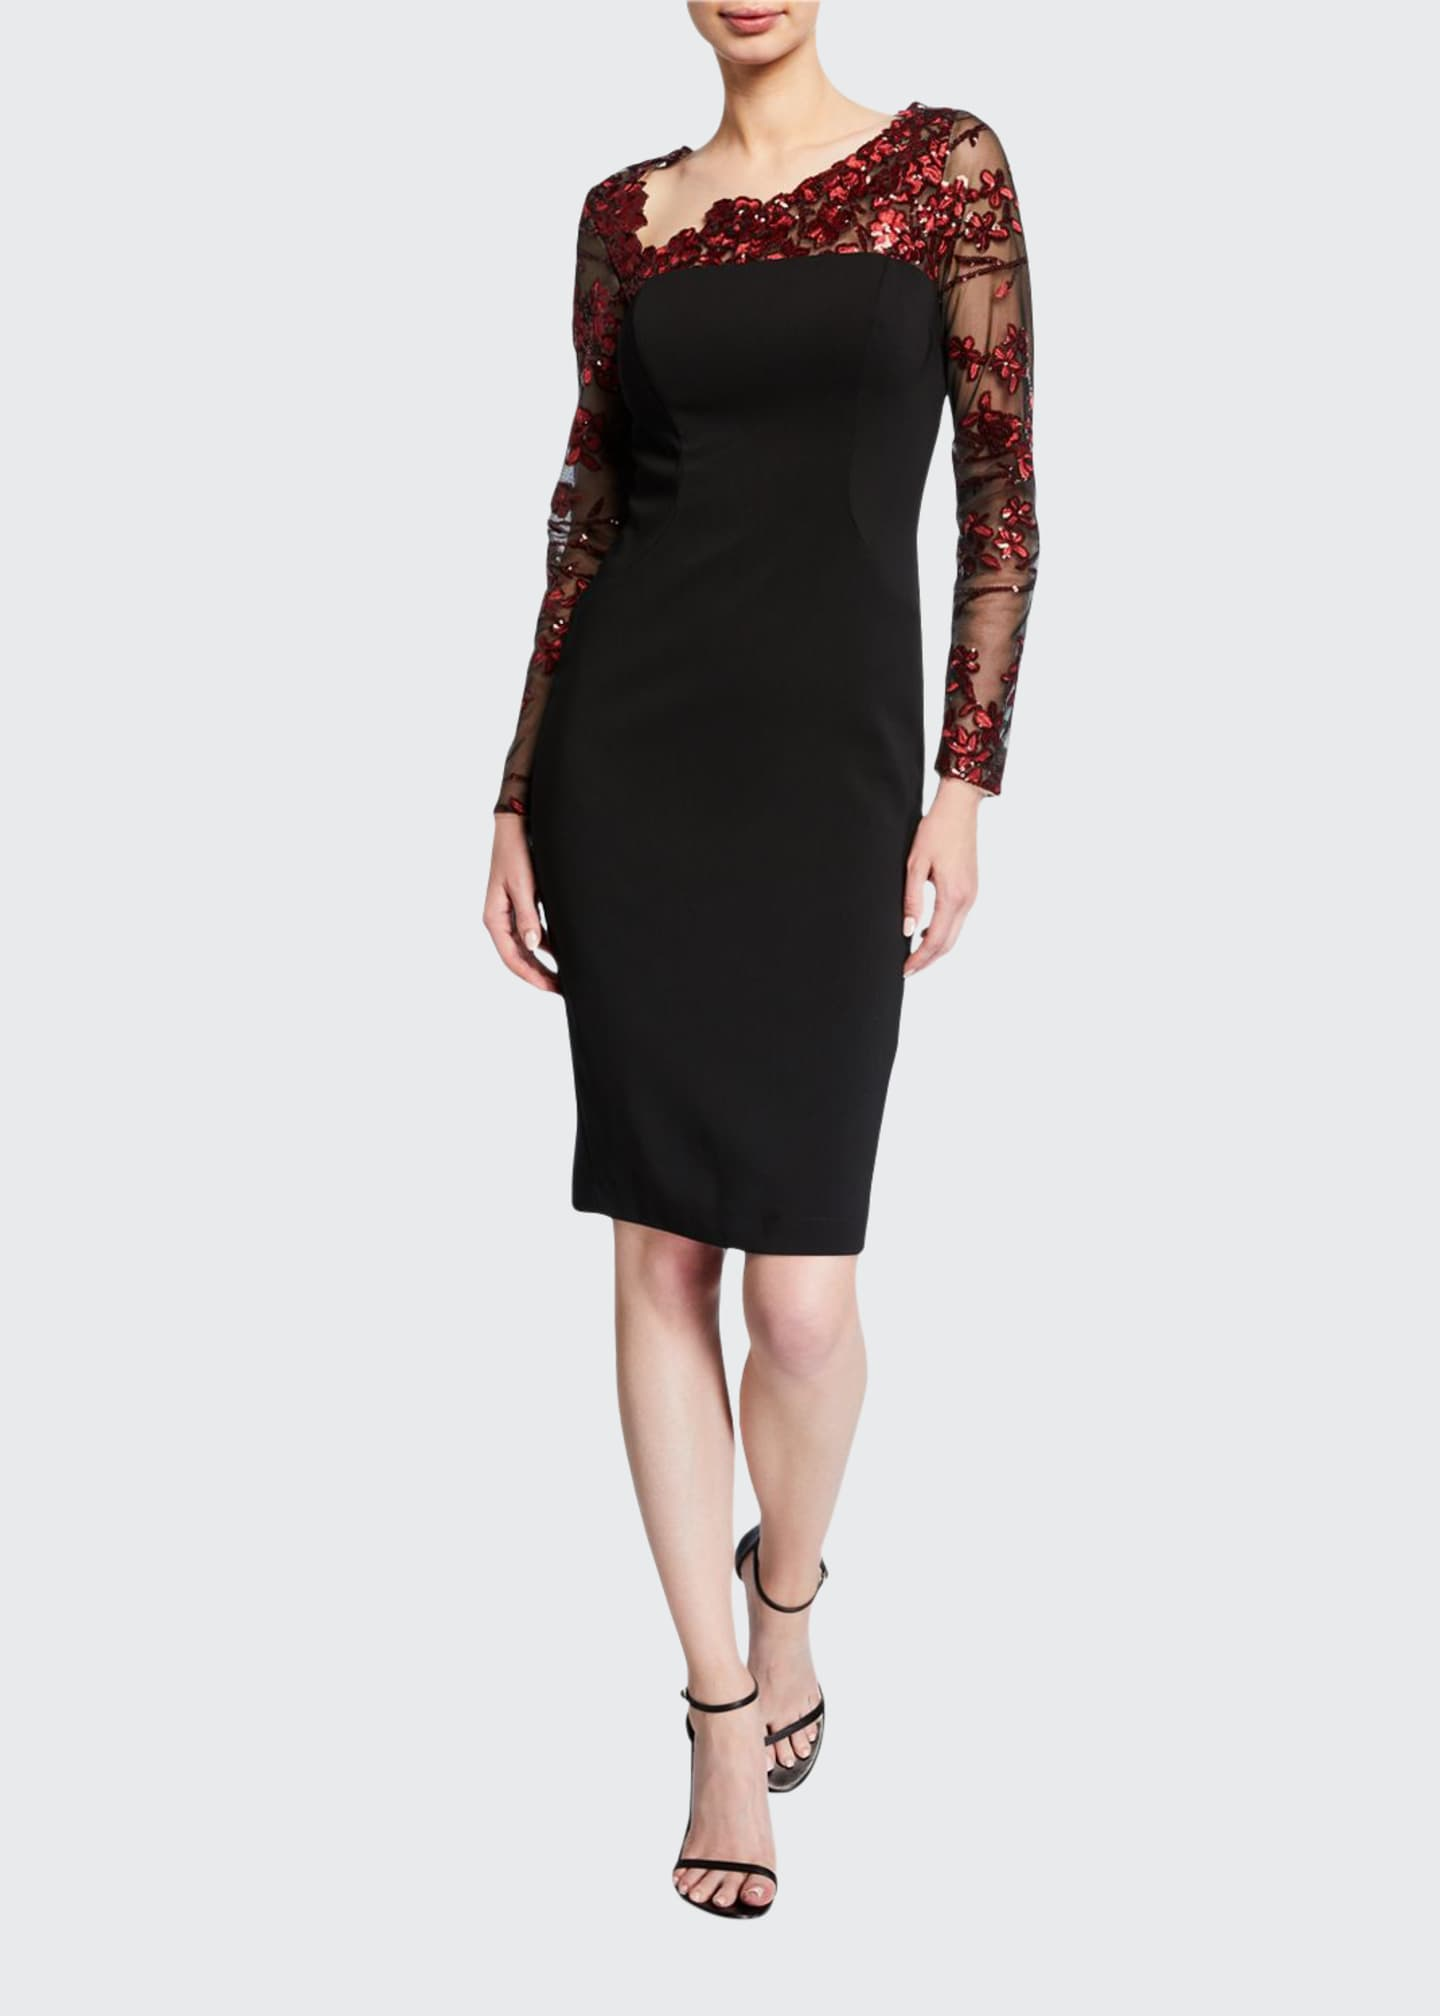 Carmen Marc Valvo Infusion Embroidered Illusion Asymmetric-Neck